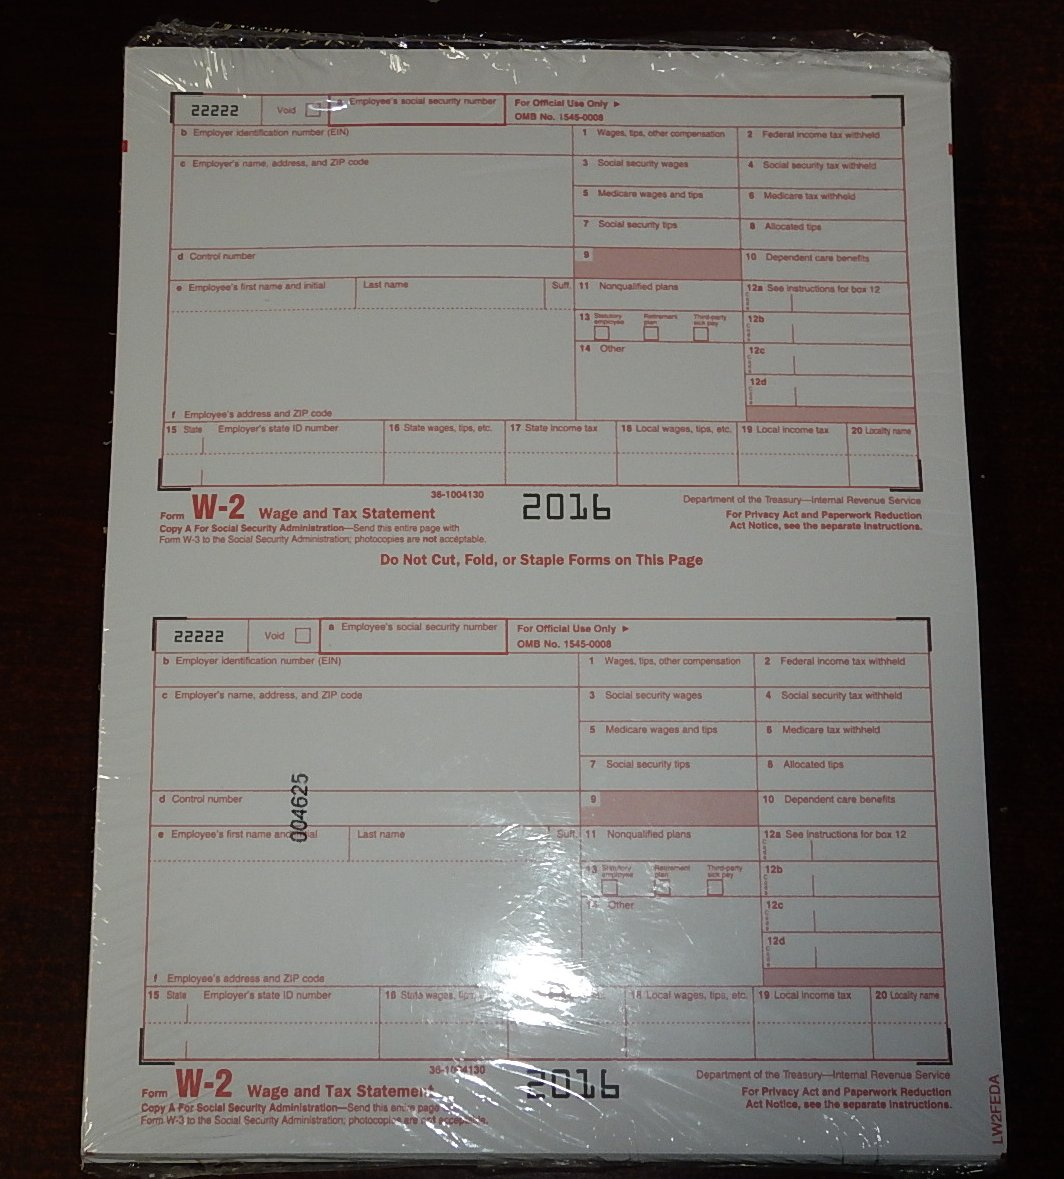 2016 10 EMPLOYEE ADAMS W-2 W2 KIT 6-PART IRS TAX FORMS